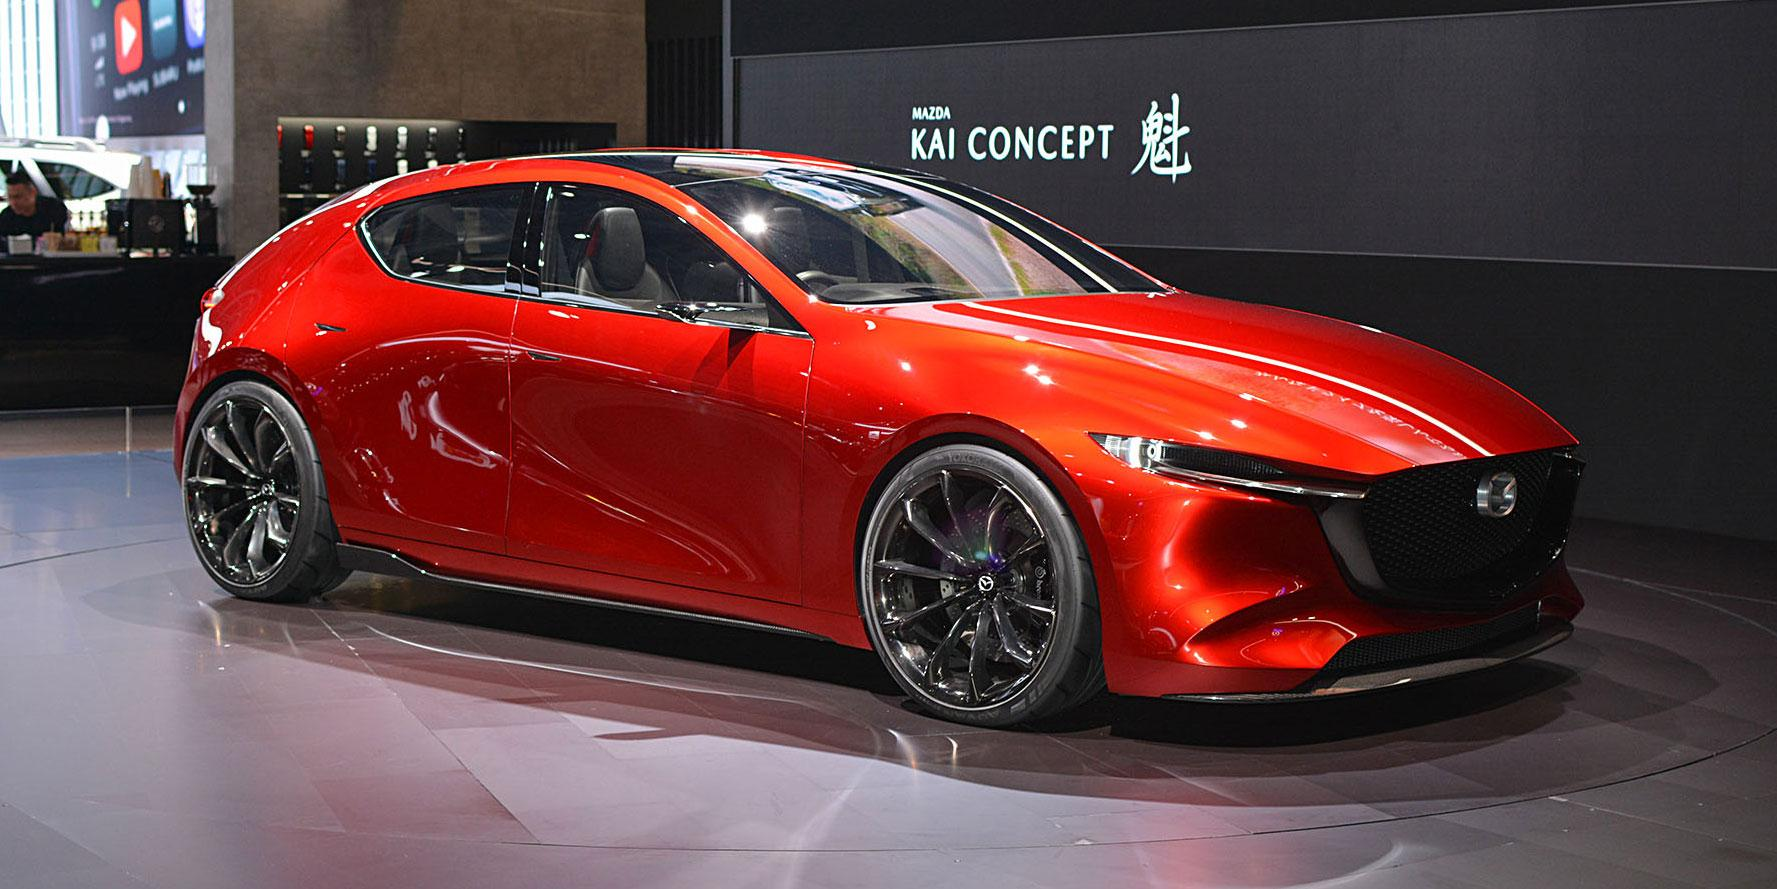 Mazda Kai Concept  Photo: Ian Whelan